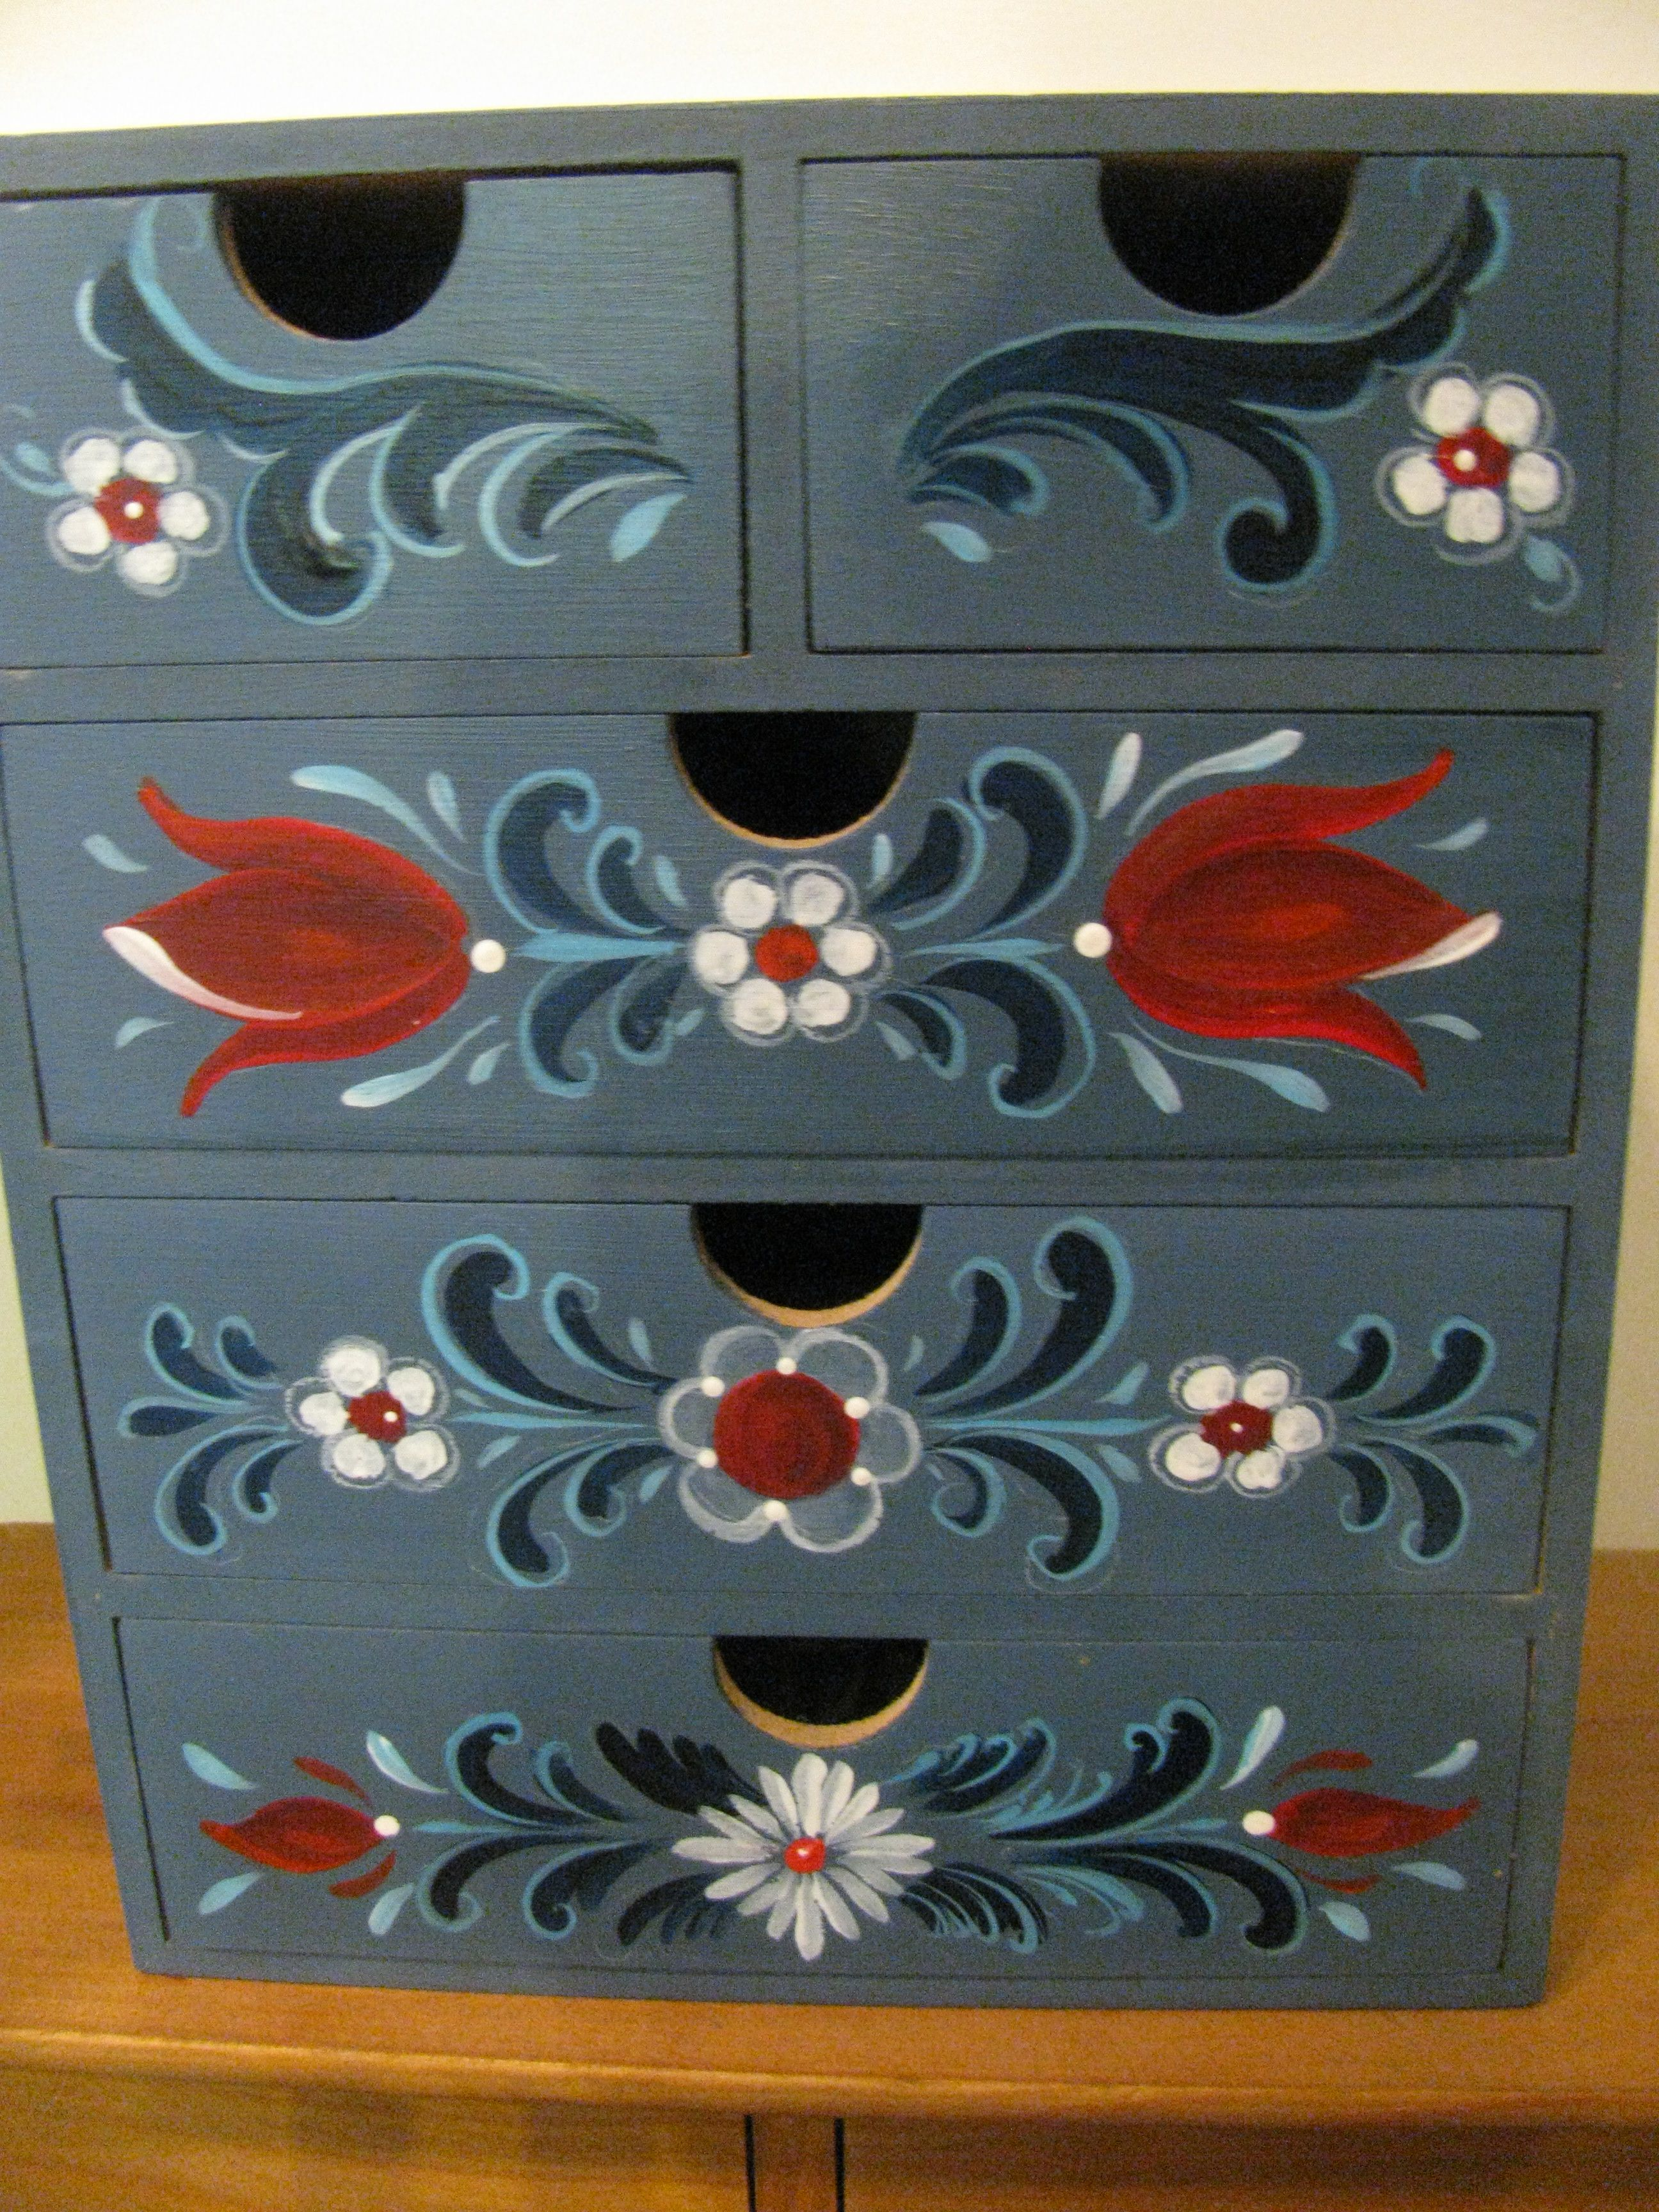 Pin By Sonia Domingues On Rosemaling Hindeloopen And Traditional Painting Scandinavian Folk Art Rosemaling Pattern Tole Painting Patterns